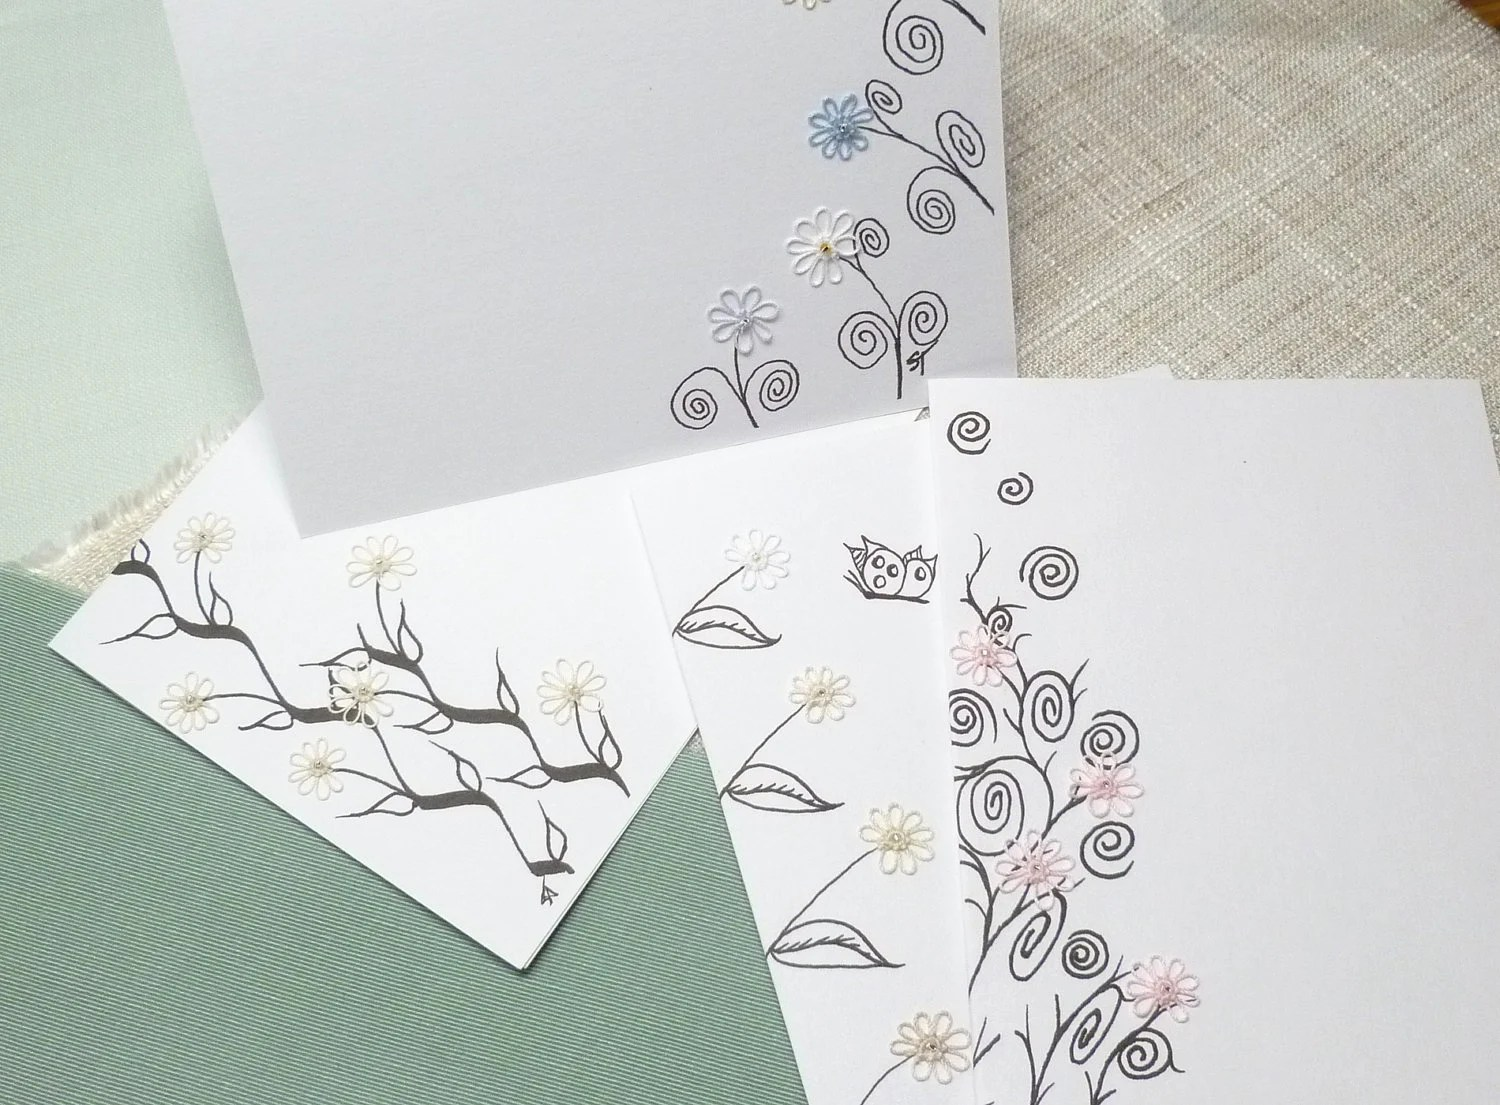 SALE Handmade Note card blank Stationery with tiny Tatted Flowers and beads -Teeny Tats -011